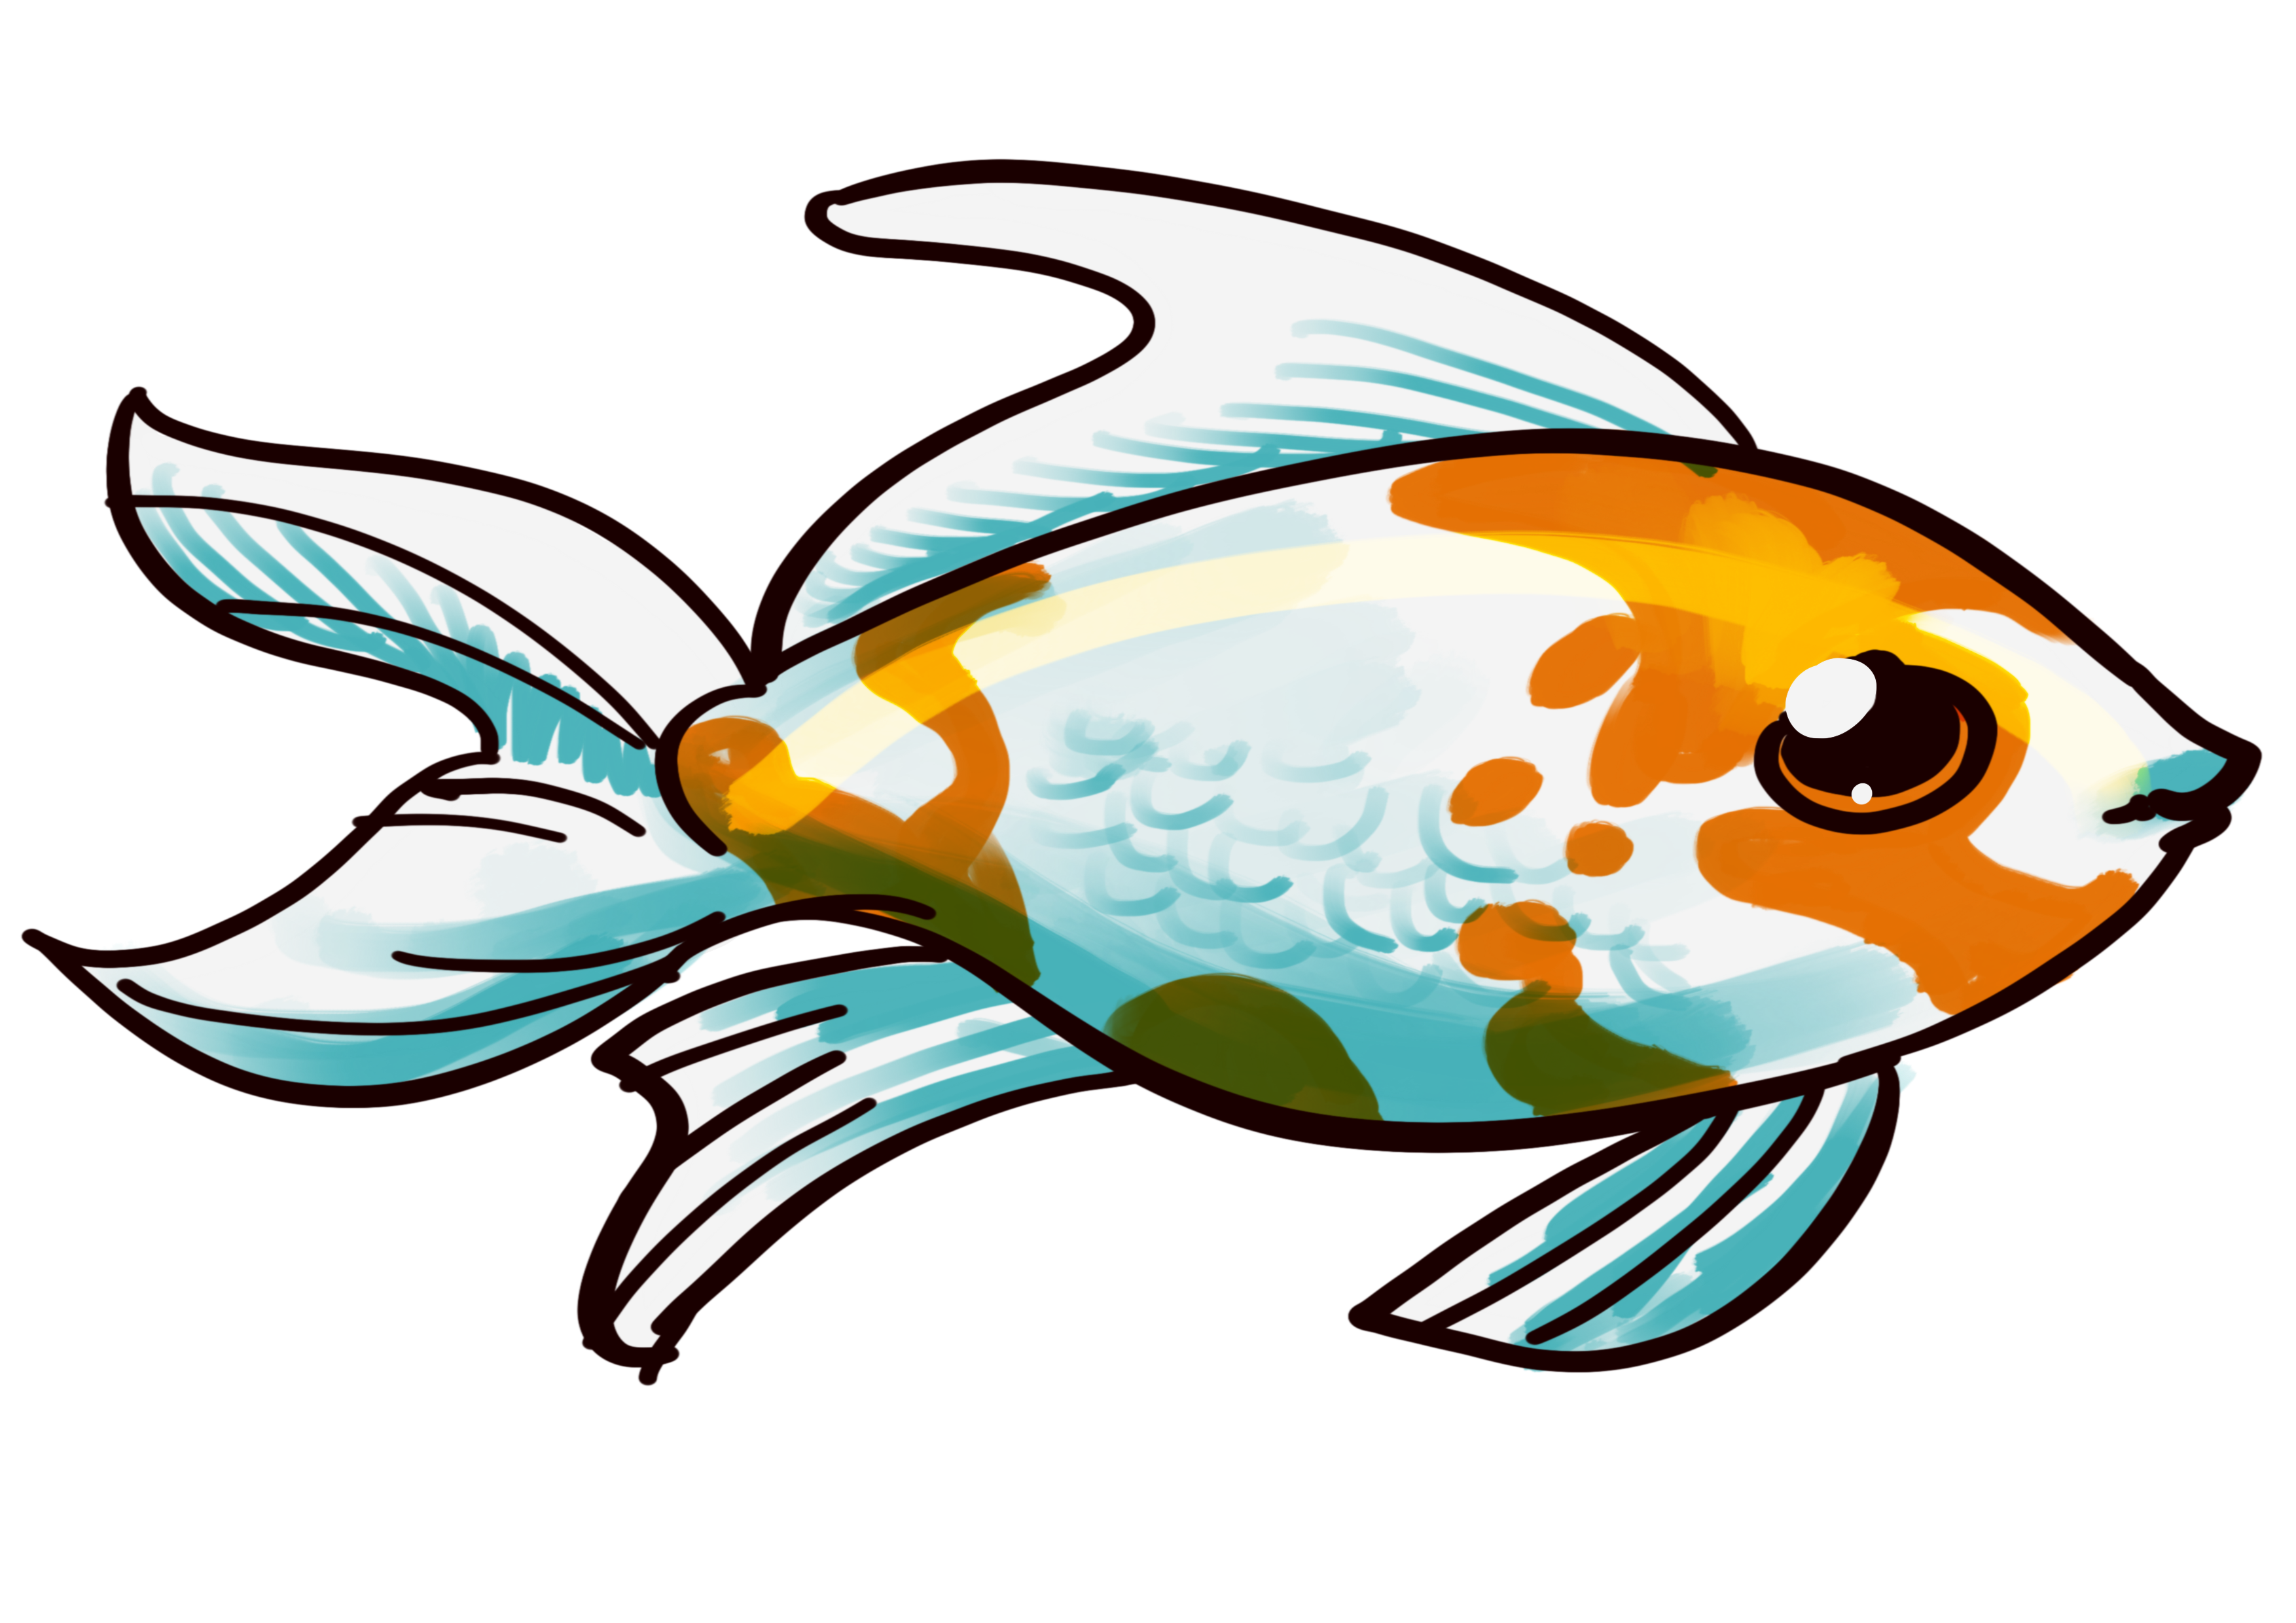 Fish you can eat clipart image freeuse Comet Goldfish - Comet Goldfish Care and info image freeuse